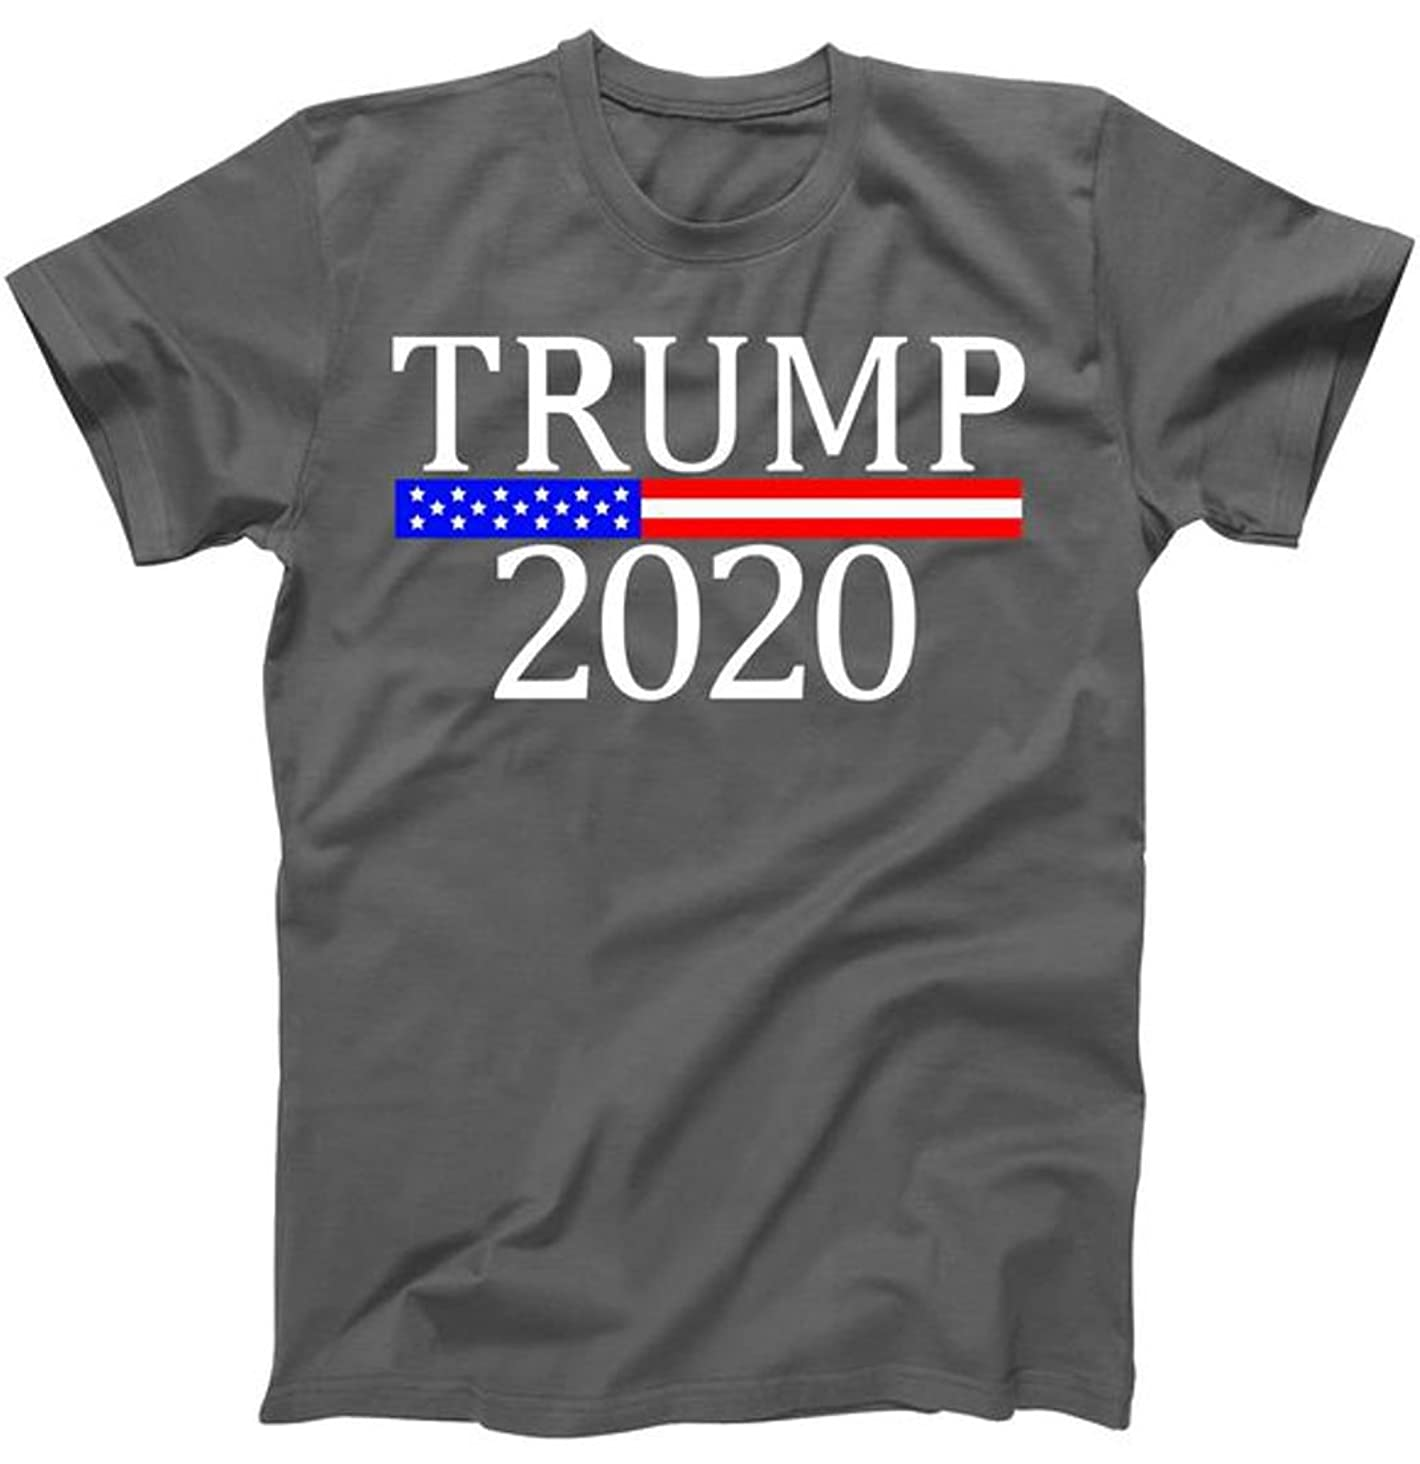 Donald Trump for President 2020 Election T-Shirt